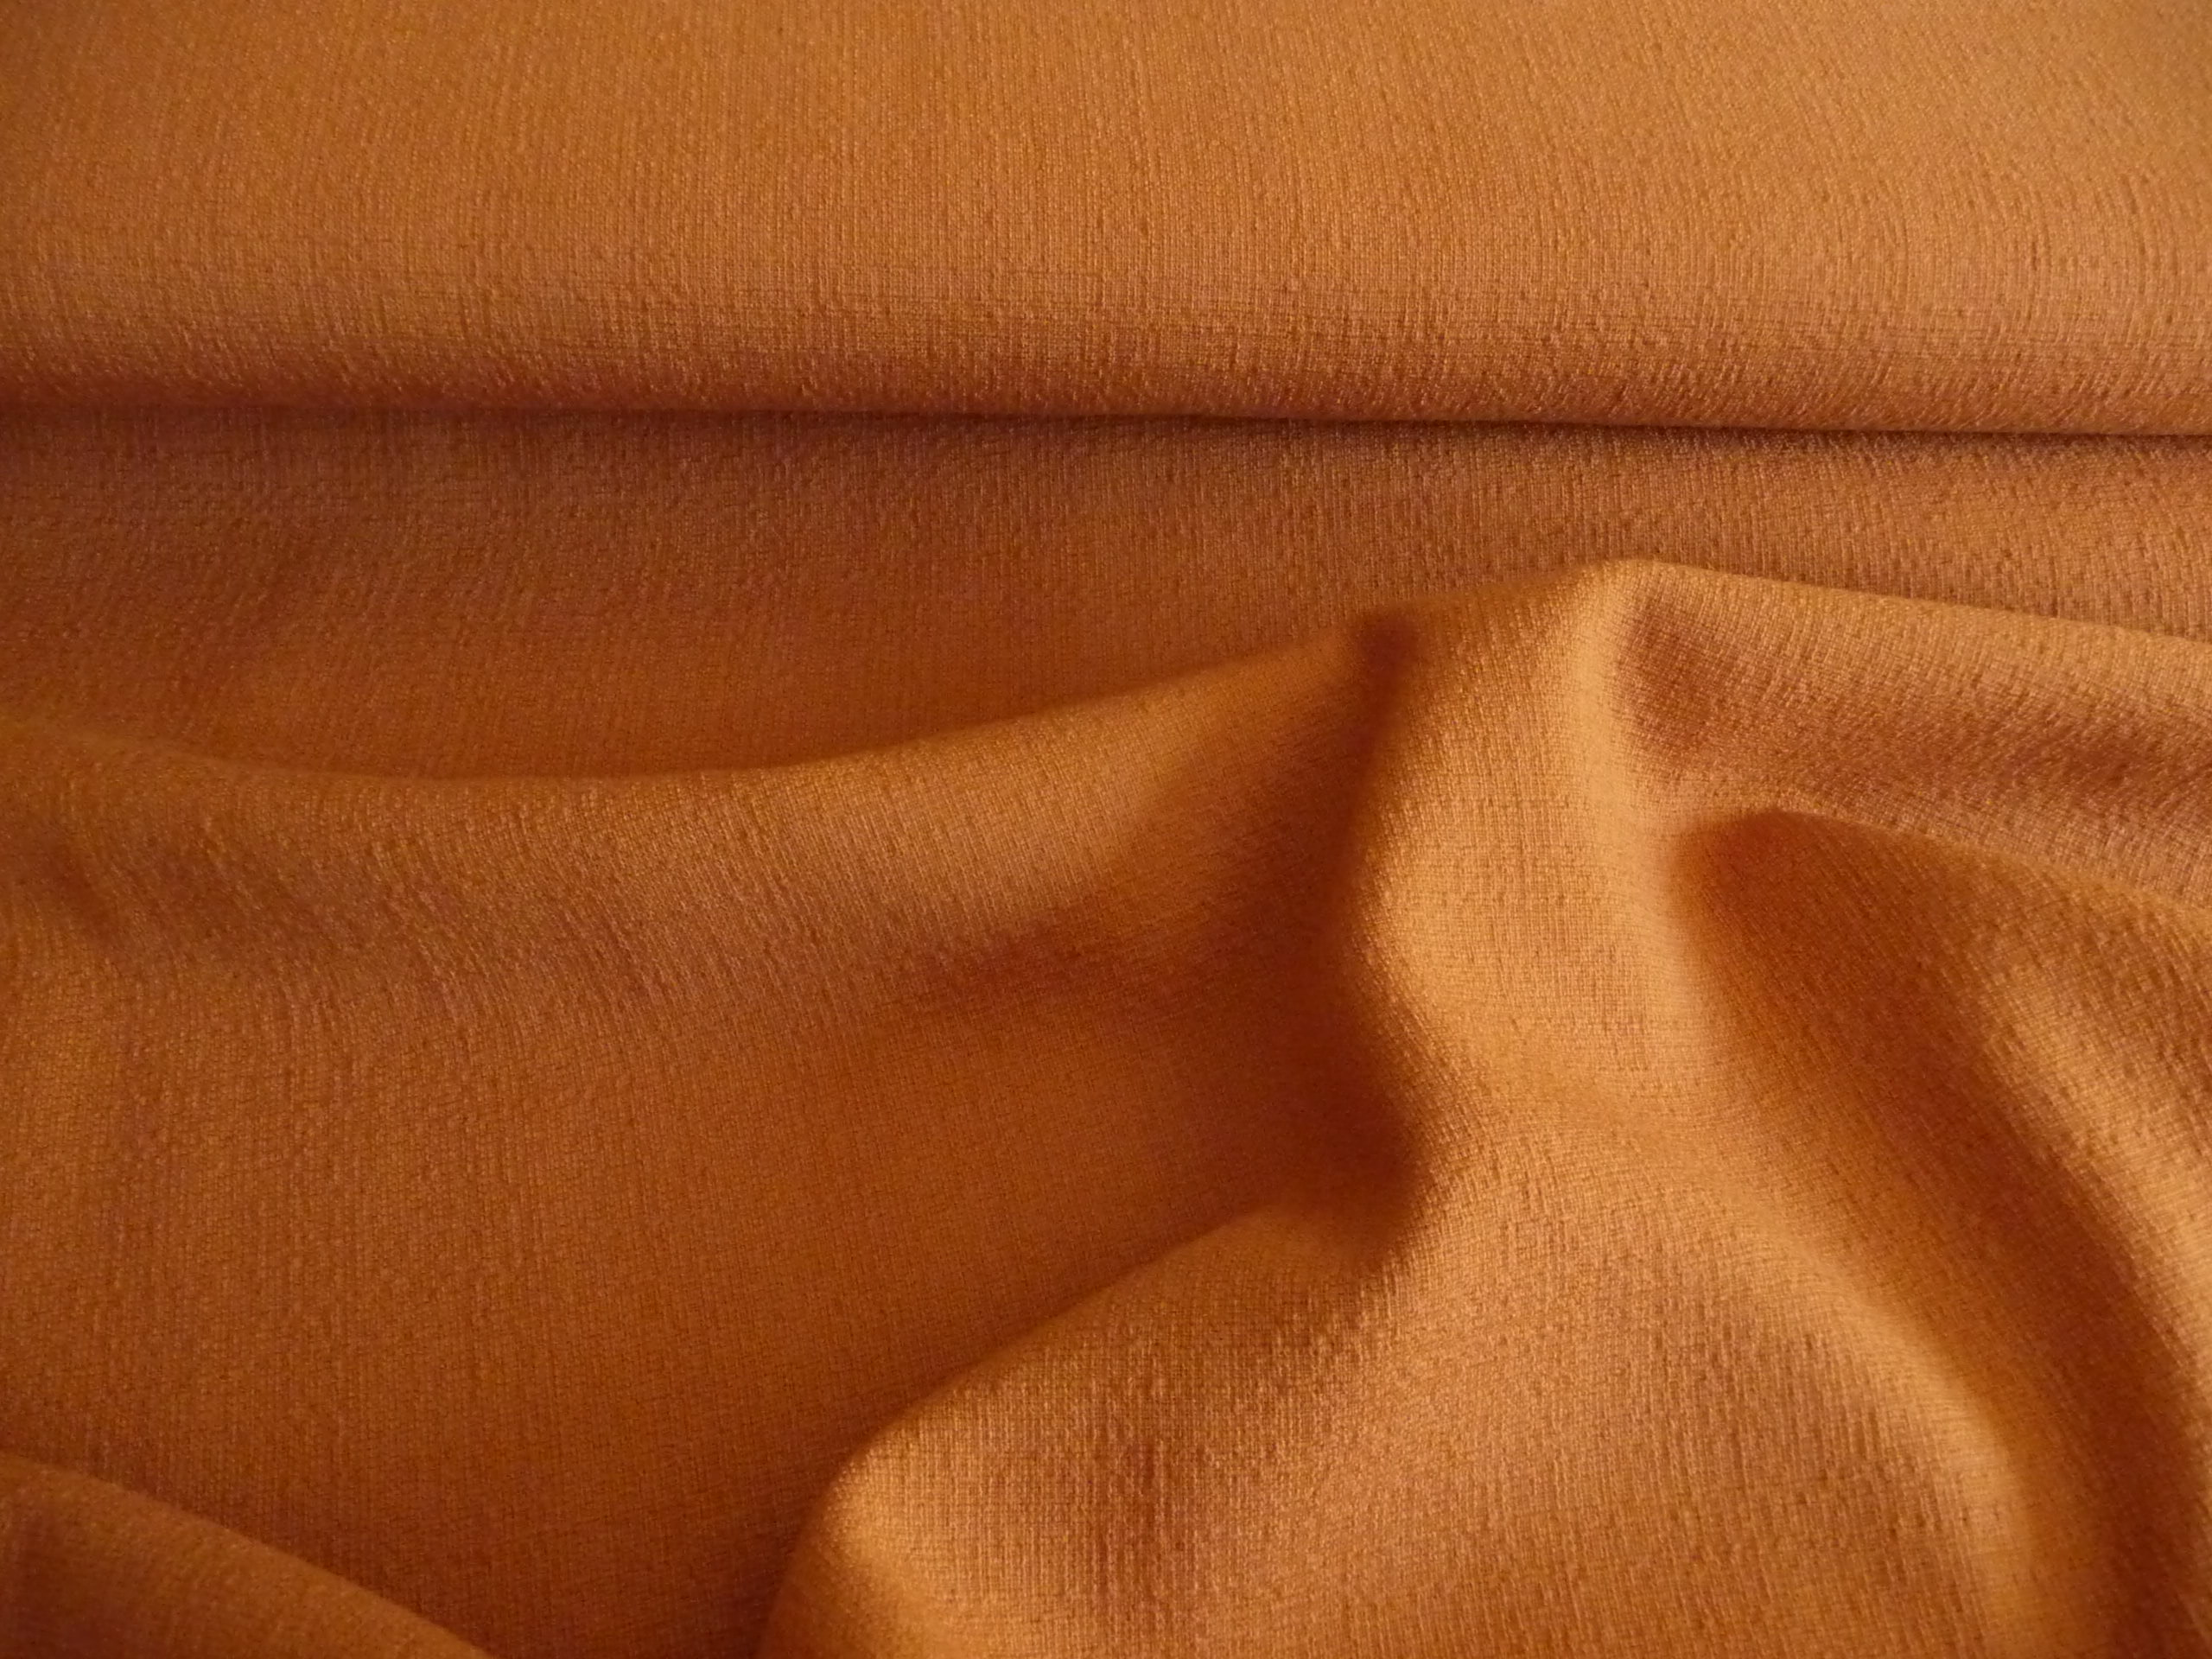 Burda Style, Wolle, Orange, weich, Elastan Burda Style, Wolle, Orange, Elastan, Struktur